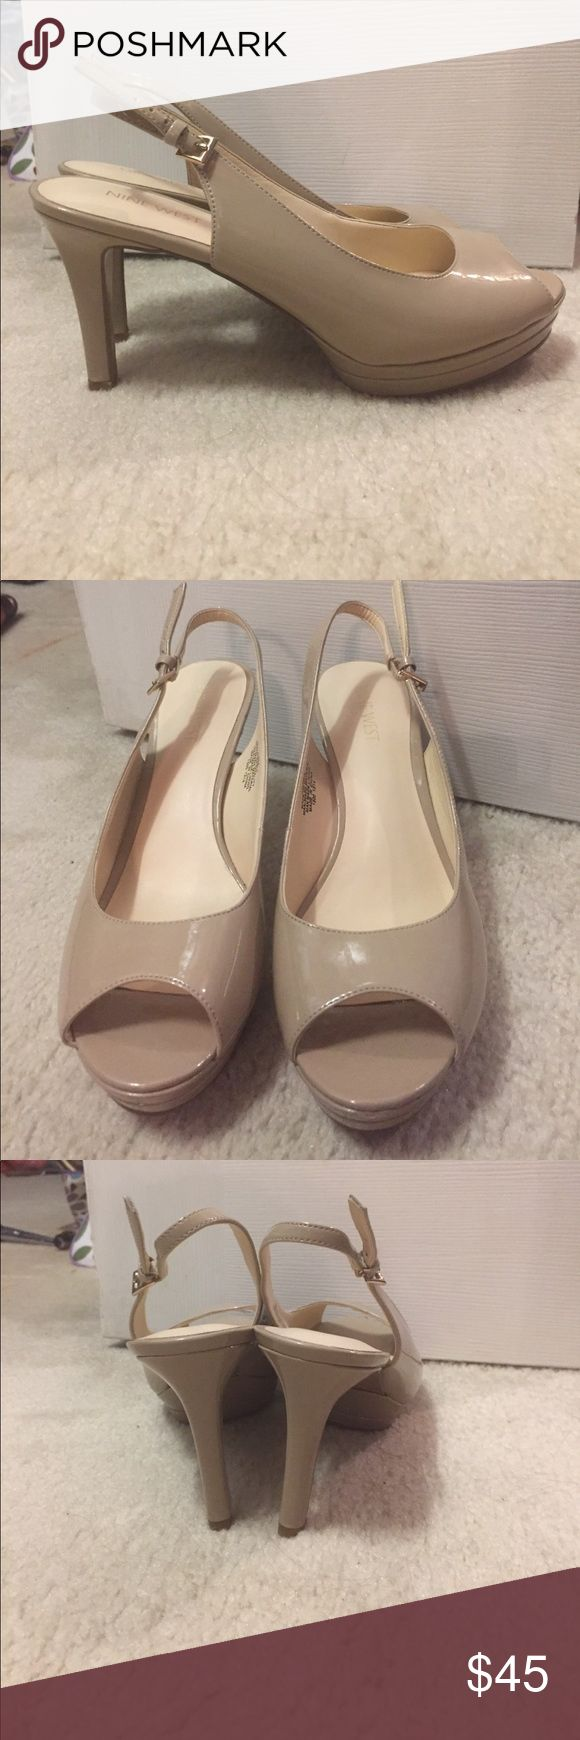 Nude peep toe patent leather high heel shoe Beautiful patent leather nude pump. Peep toe and sling back. Excellent condition - worn for 1 hour ever!! Nine West Shoes Heels